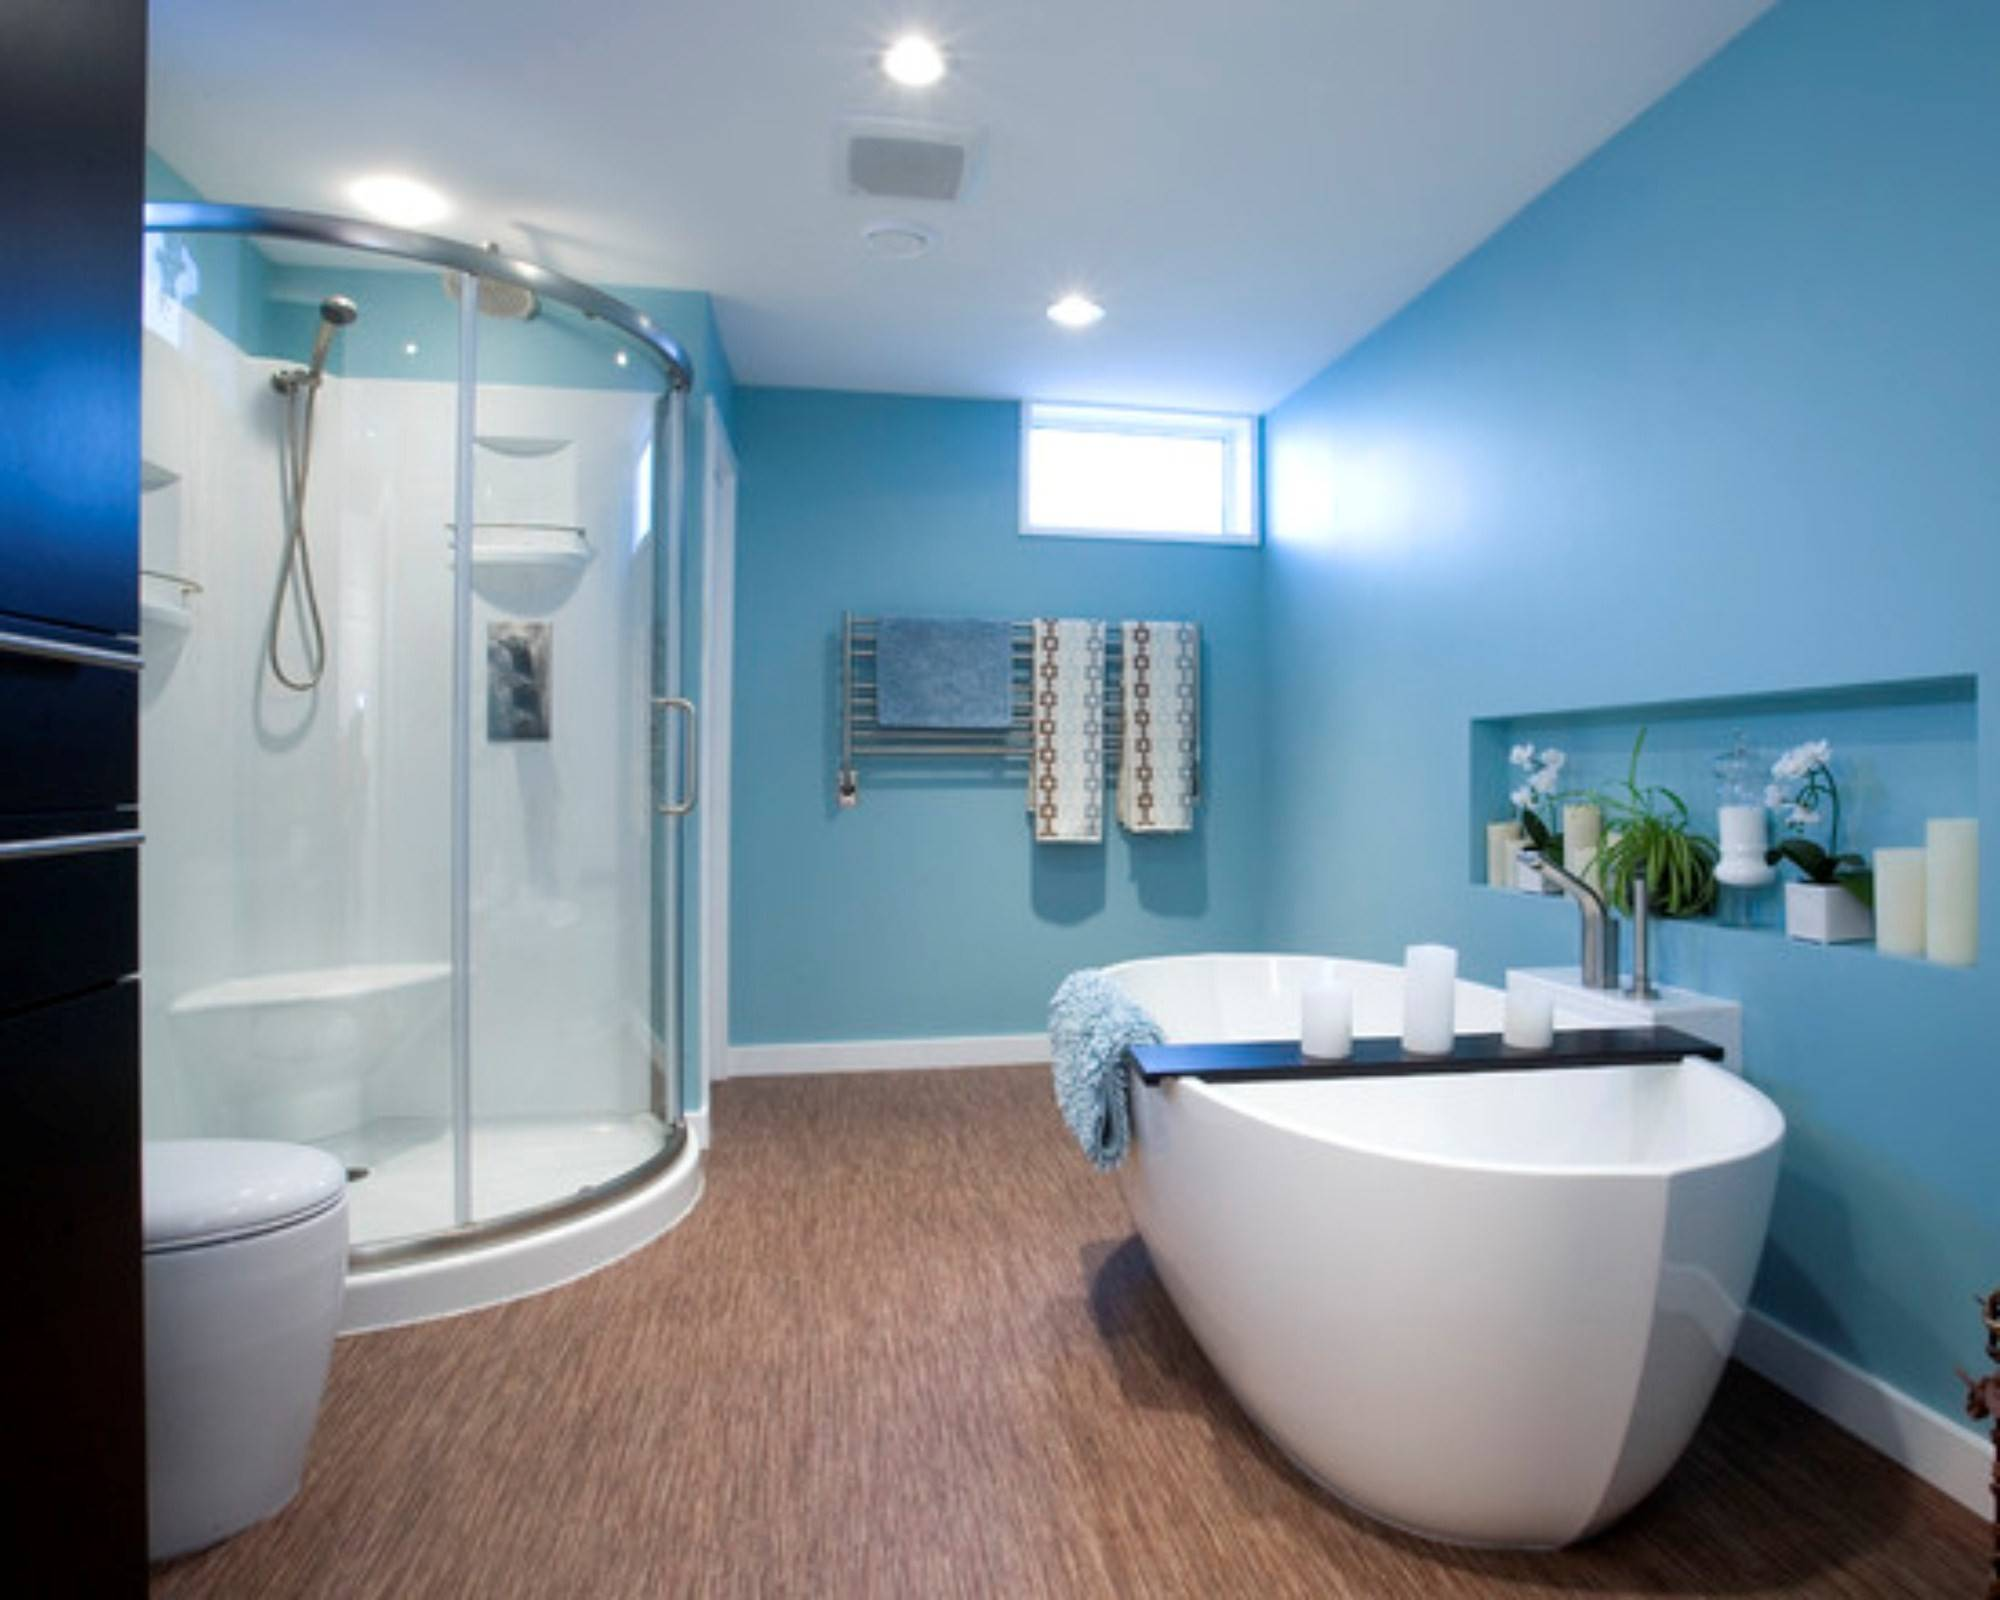 bathroom colors for 2020 - 600×414